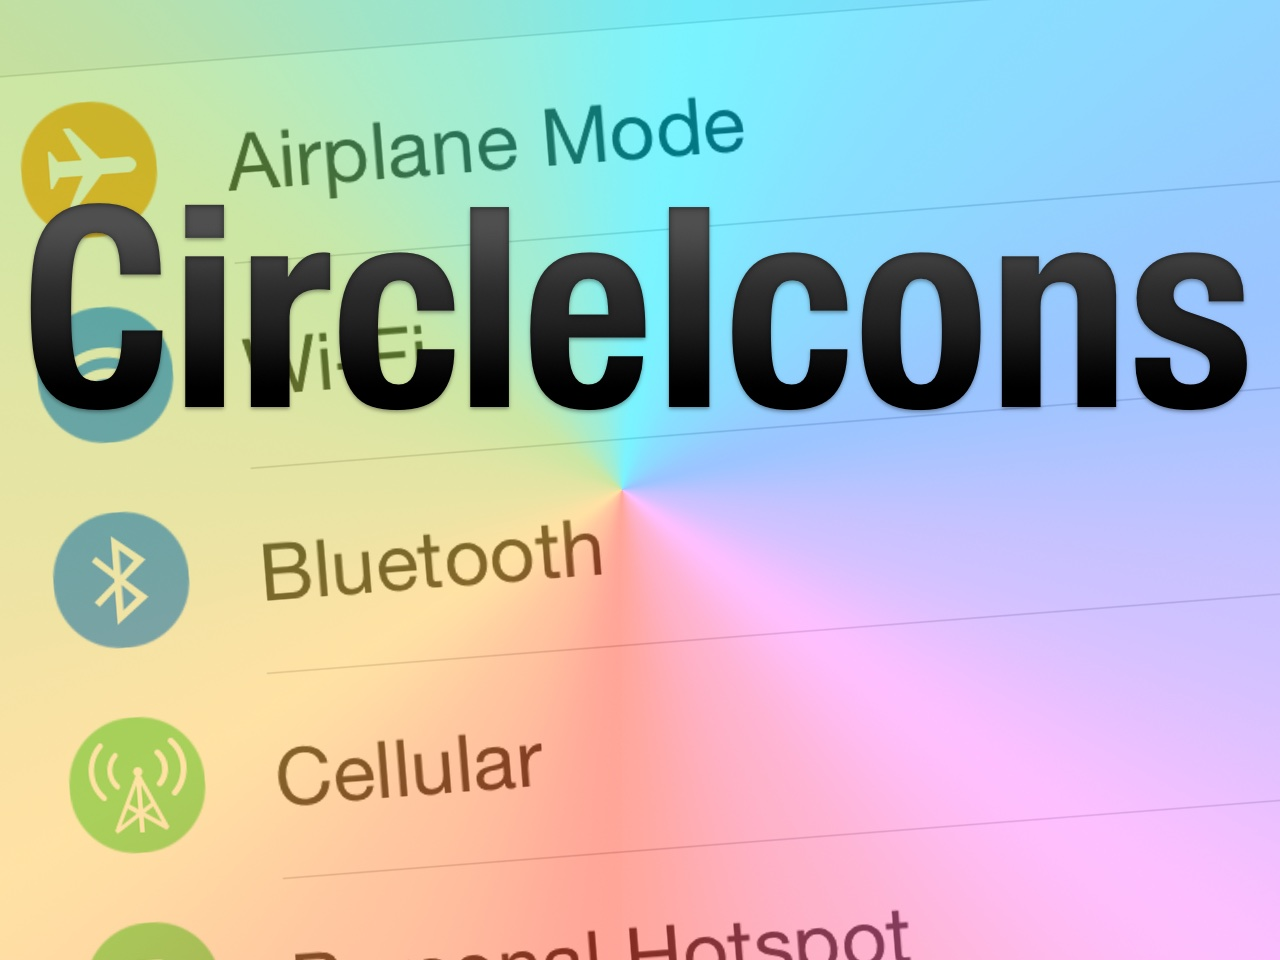 how to change icon shape on iphone without jailbreak